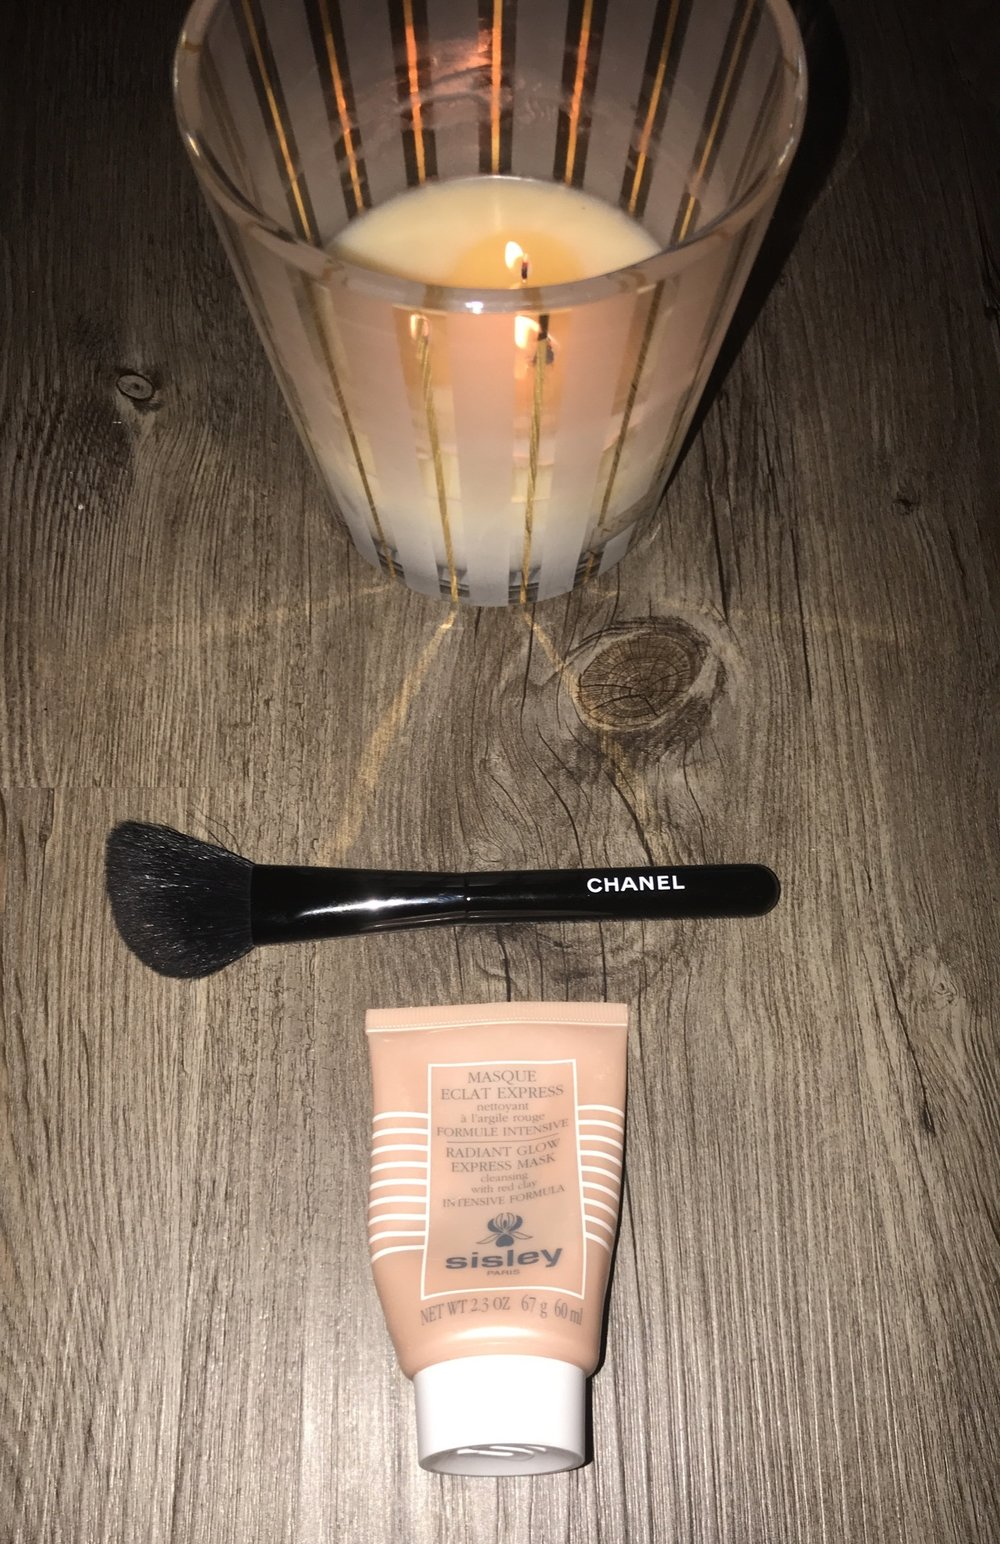 Sisley Red Clay Radiant Express Mask -Shop Directly     $128 Sisley Radiant Express Glow Mask  -Review Youtube Video